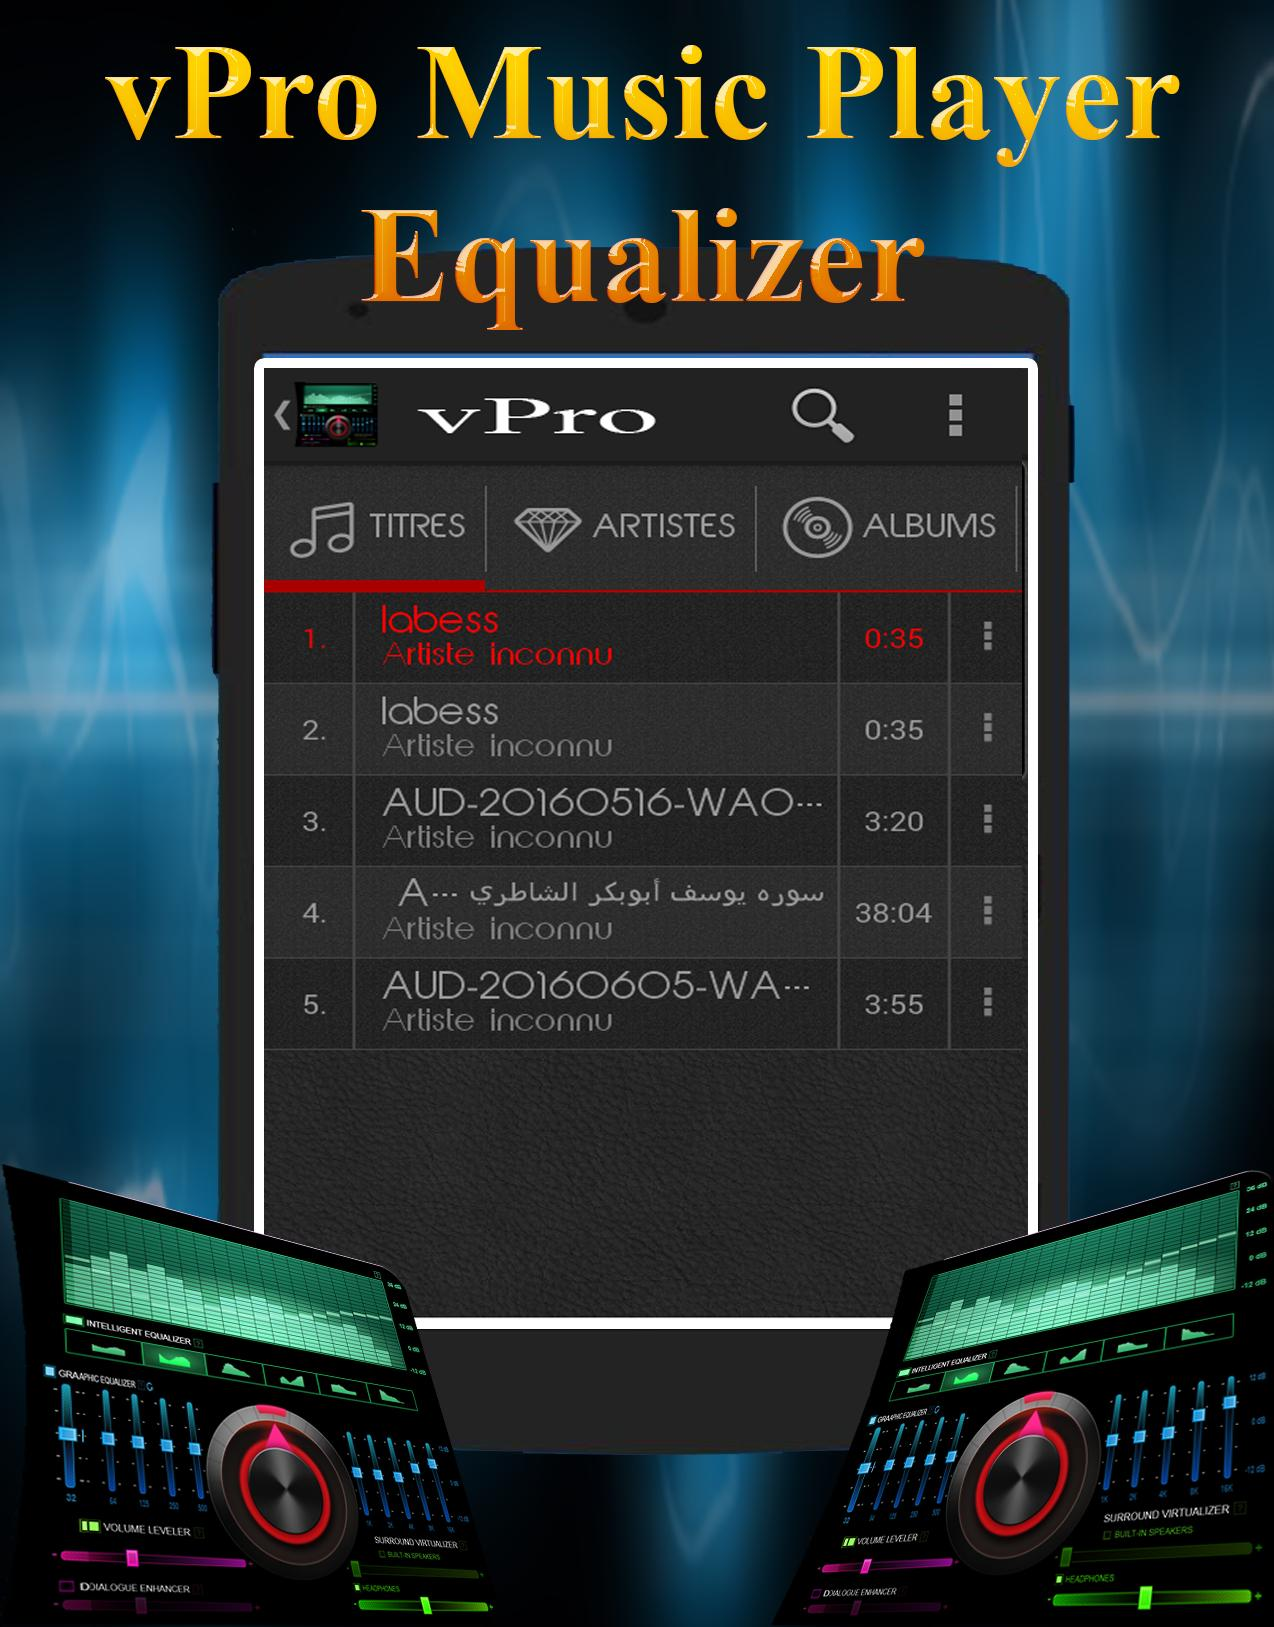 vPro Music Player Equalizer for Android - APK Download